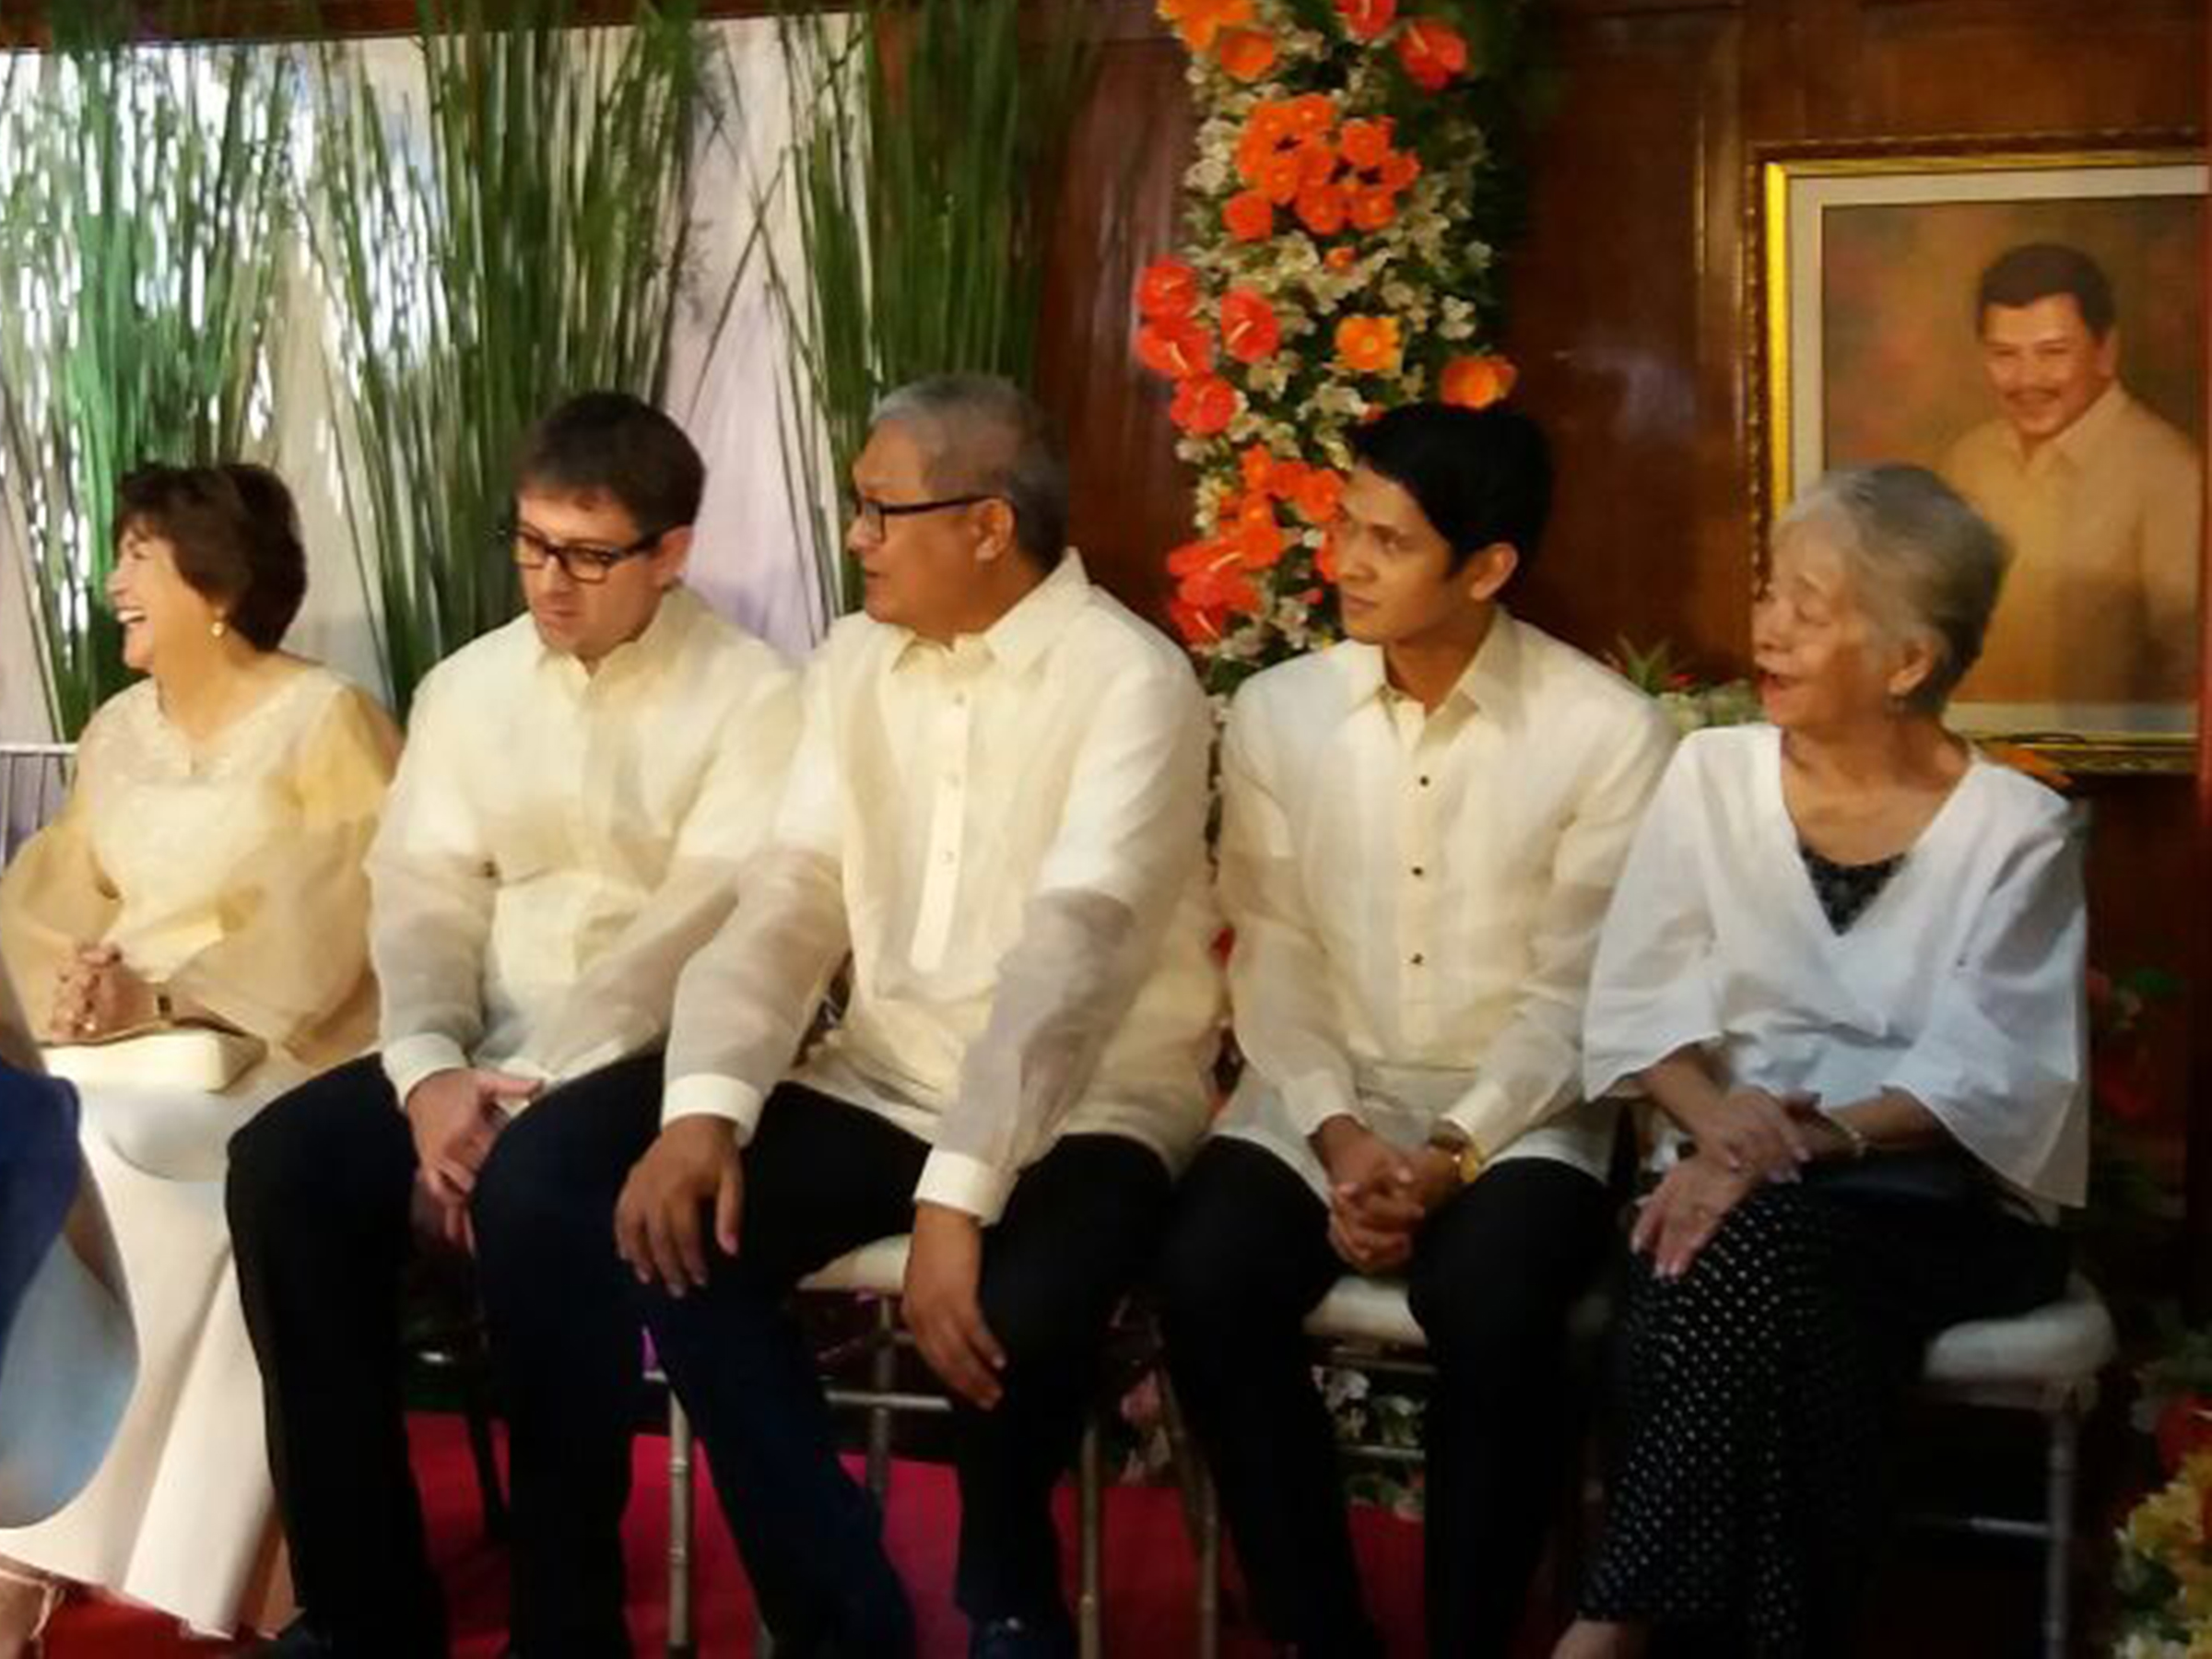 Seated onstage, Rudy De Dios (second from right) waits for his turn to receive his award. Manila Broadcasting Company's Freddie Elizalde (second from left) was there to accept an award on his father Fred J. Elizalde's behalf.